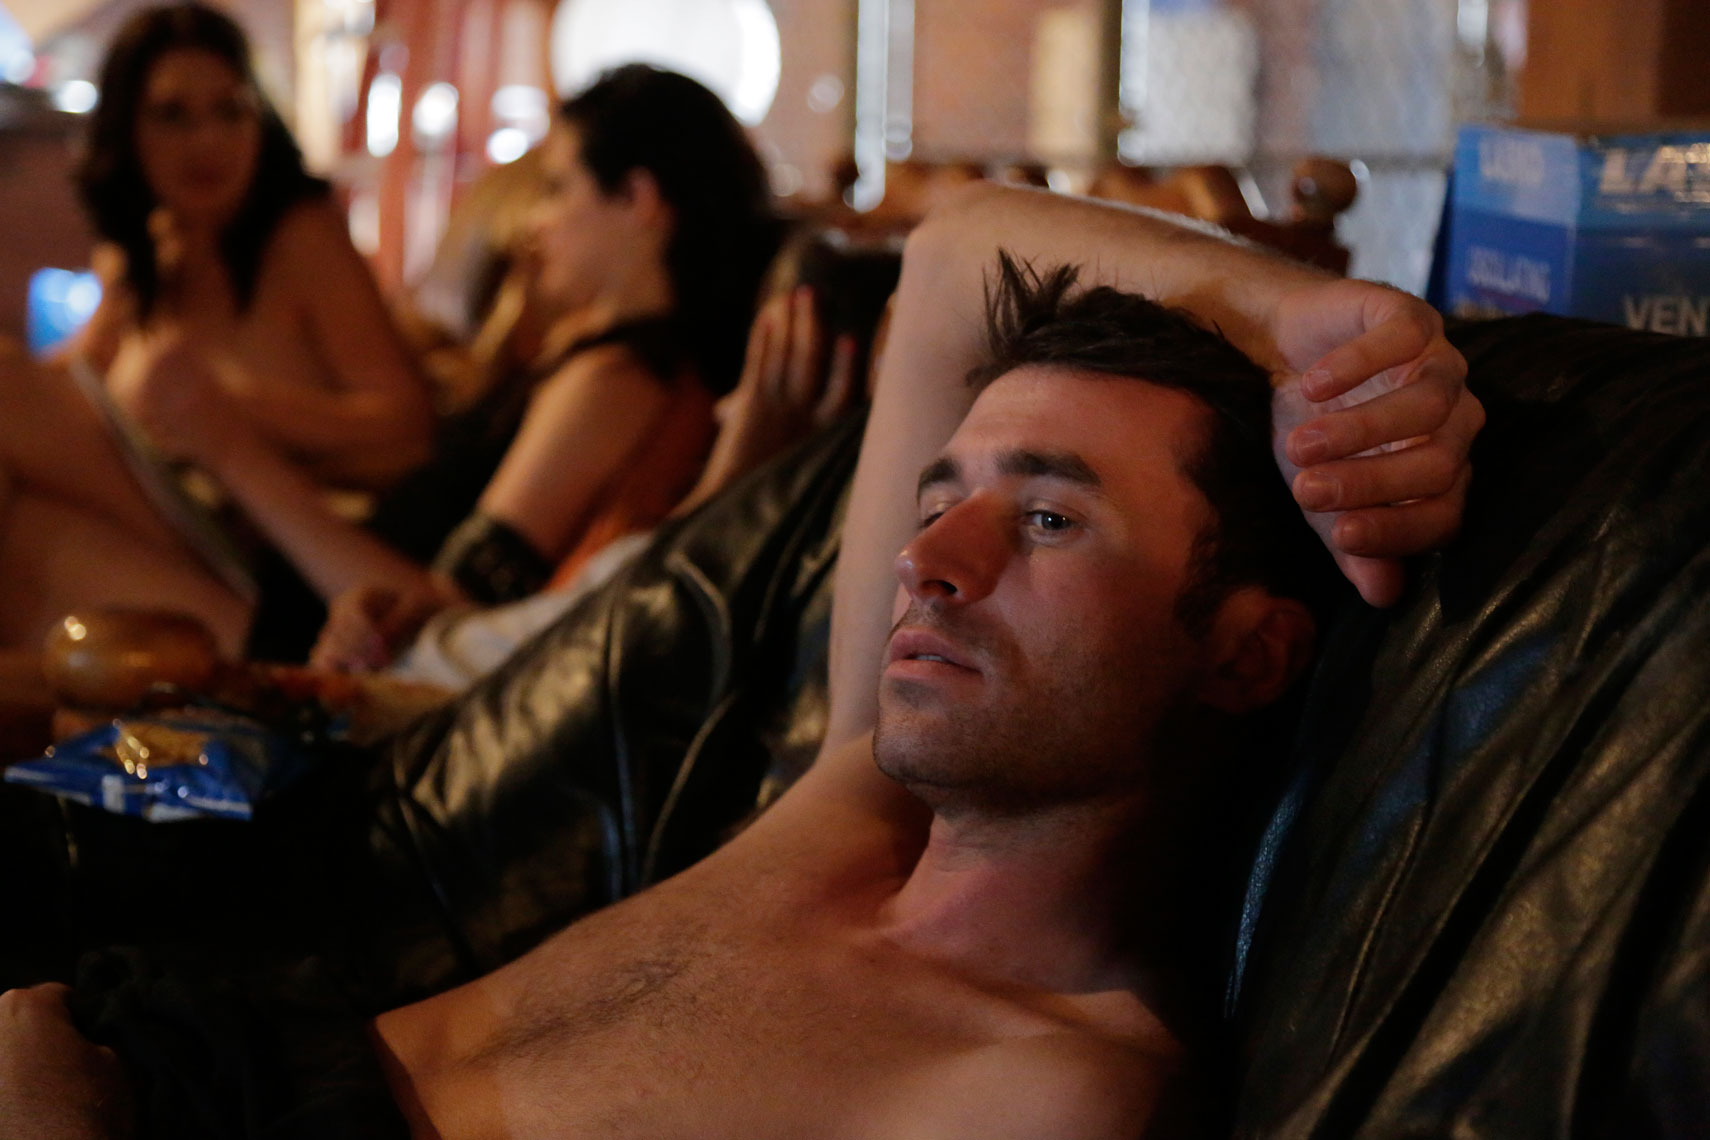 James Deen by PETER LueDERS